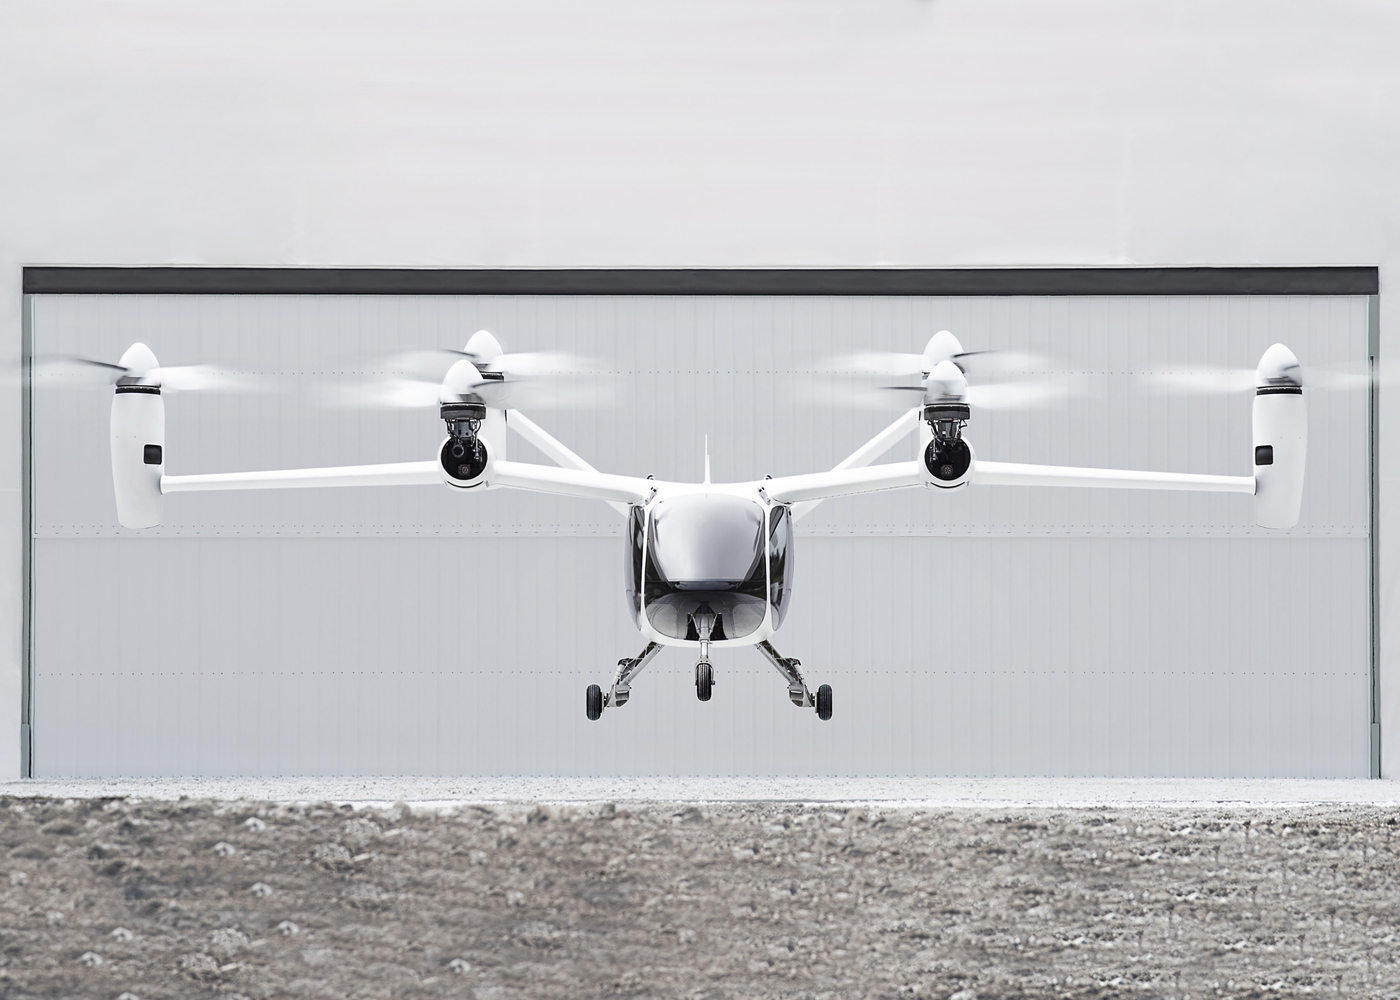 Joby S4 eVTOL used for Marine Corps demo